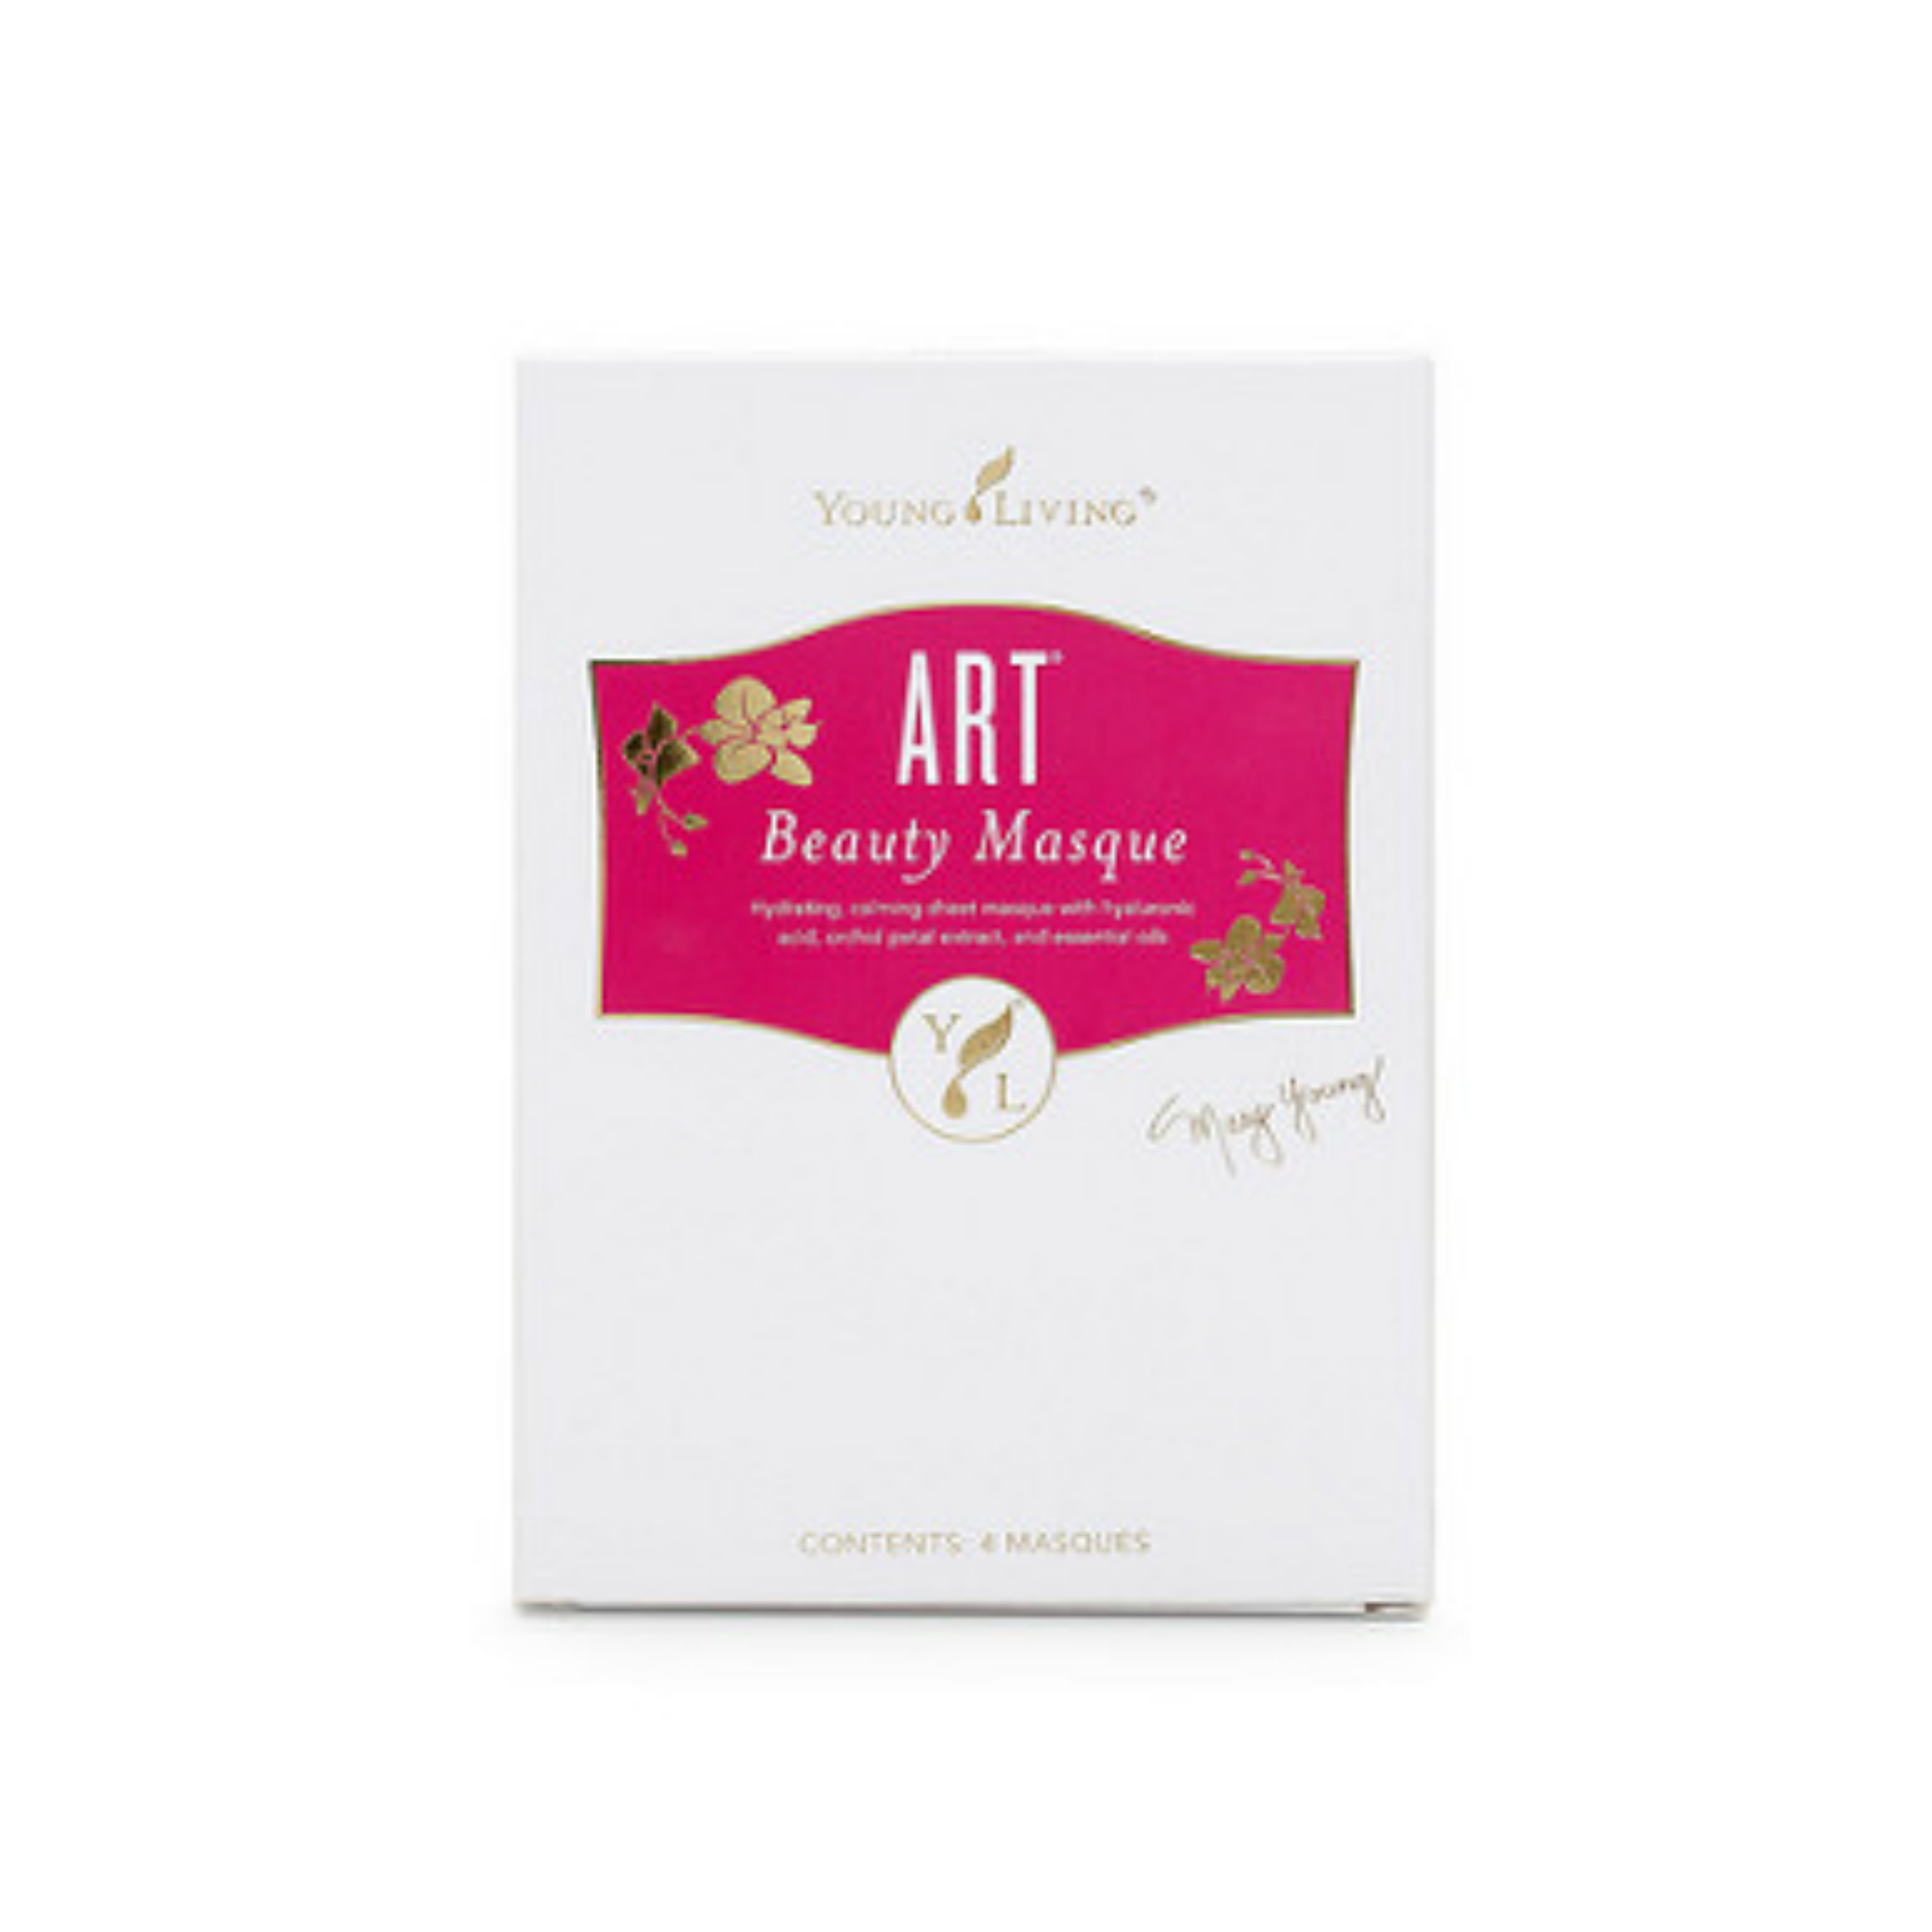 ART BEAUTY MASQUE    The ART Beauty Masque is the perfect way to support a healthy and youthful-looking complexion, and a great way to give your skin some extra pampering. This fabric mask leaves skin looking radiant and feeling soft with its formula of essential oils and exotic orchid petals. The ART Beauty Masque is designed with all skin types in mind and will nurture and moisturize your skin, leaving it looking brighter and feeling more refreshed.   Click here   to learn more about this product.